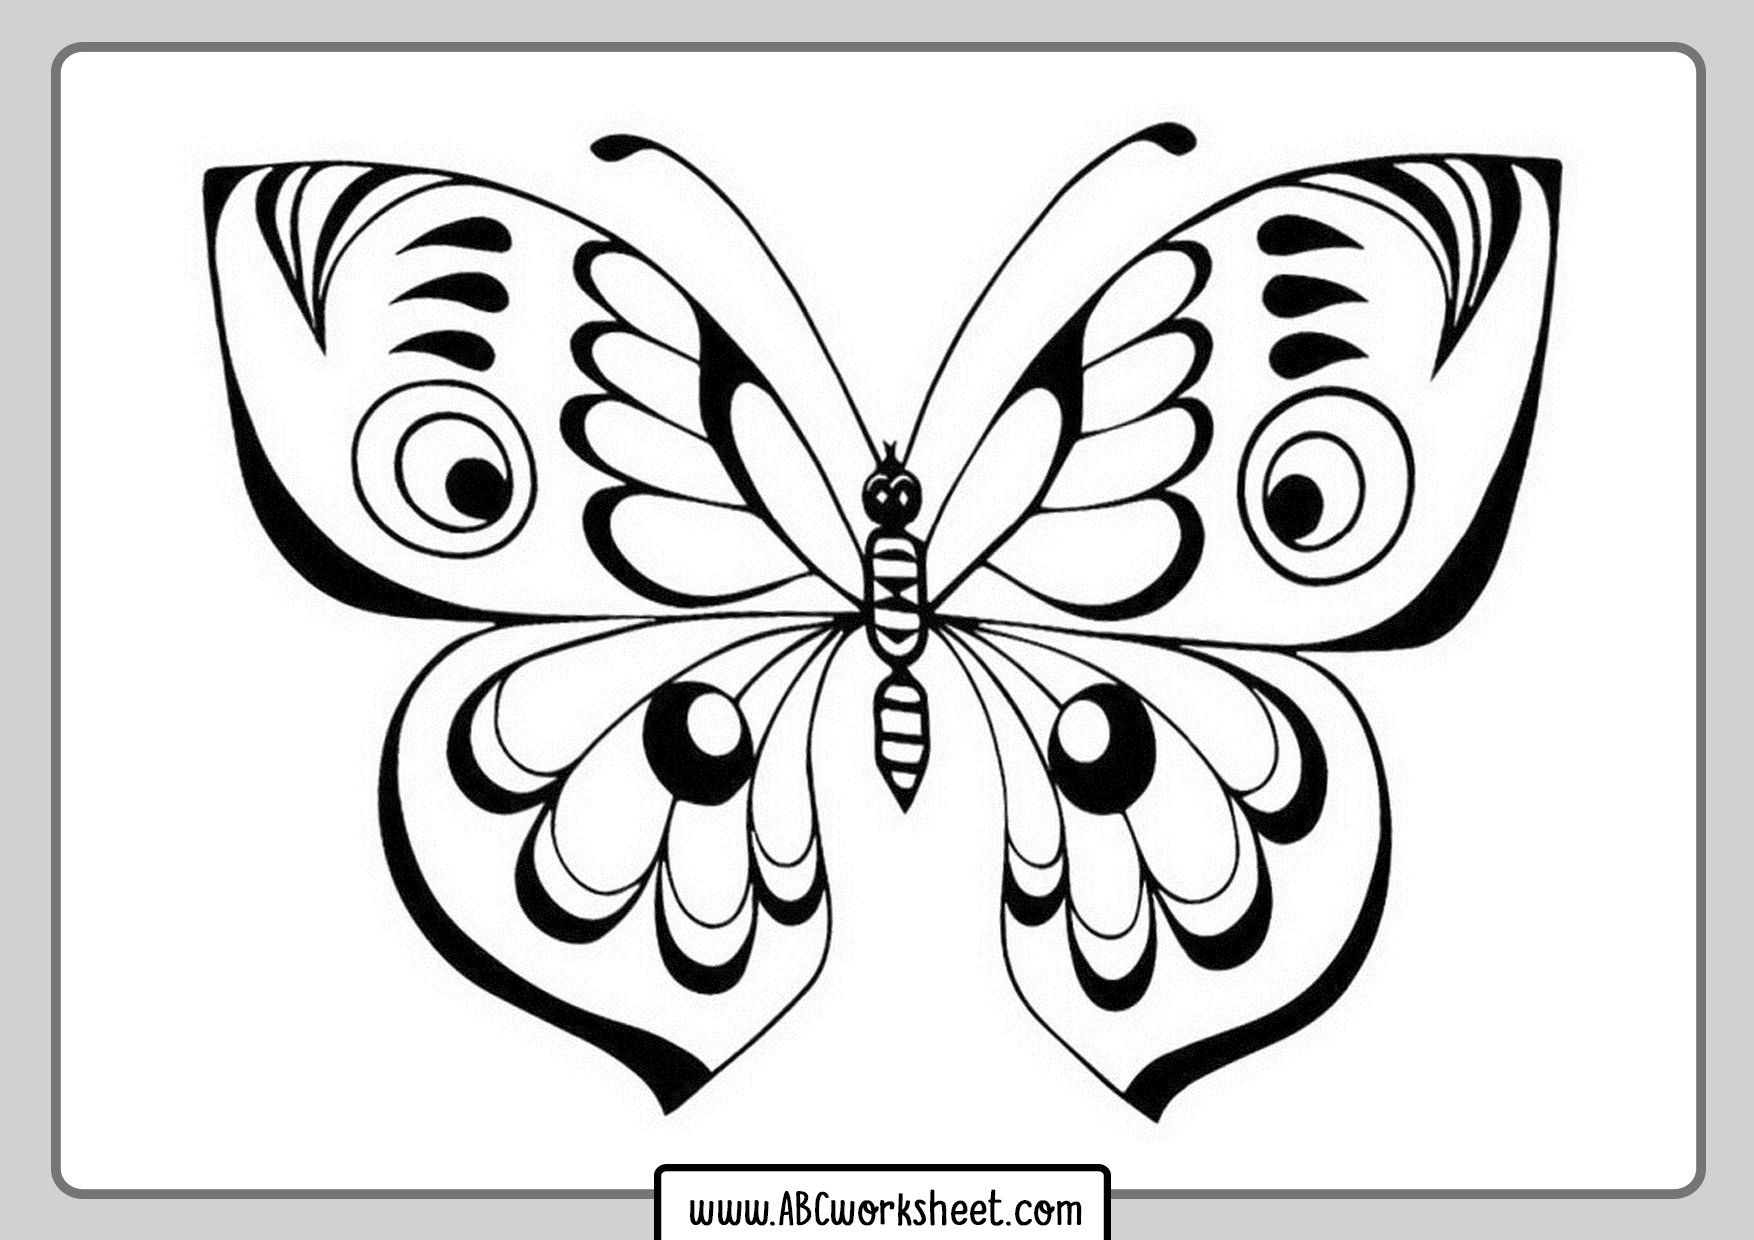 Printable Butterfly For Coloring